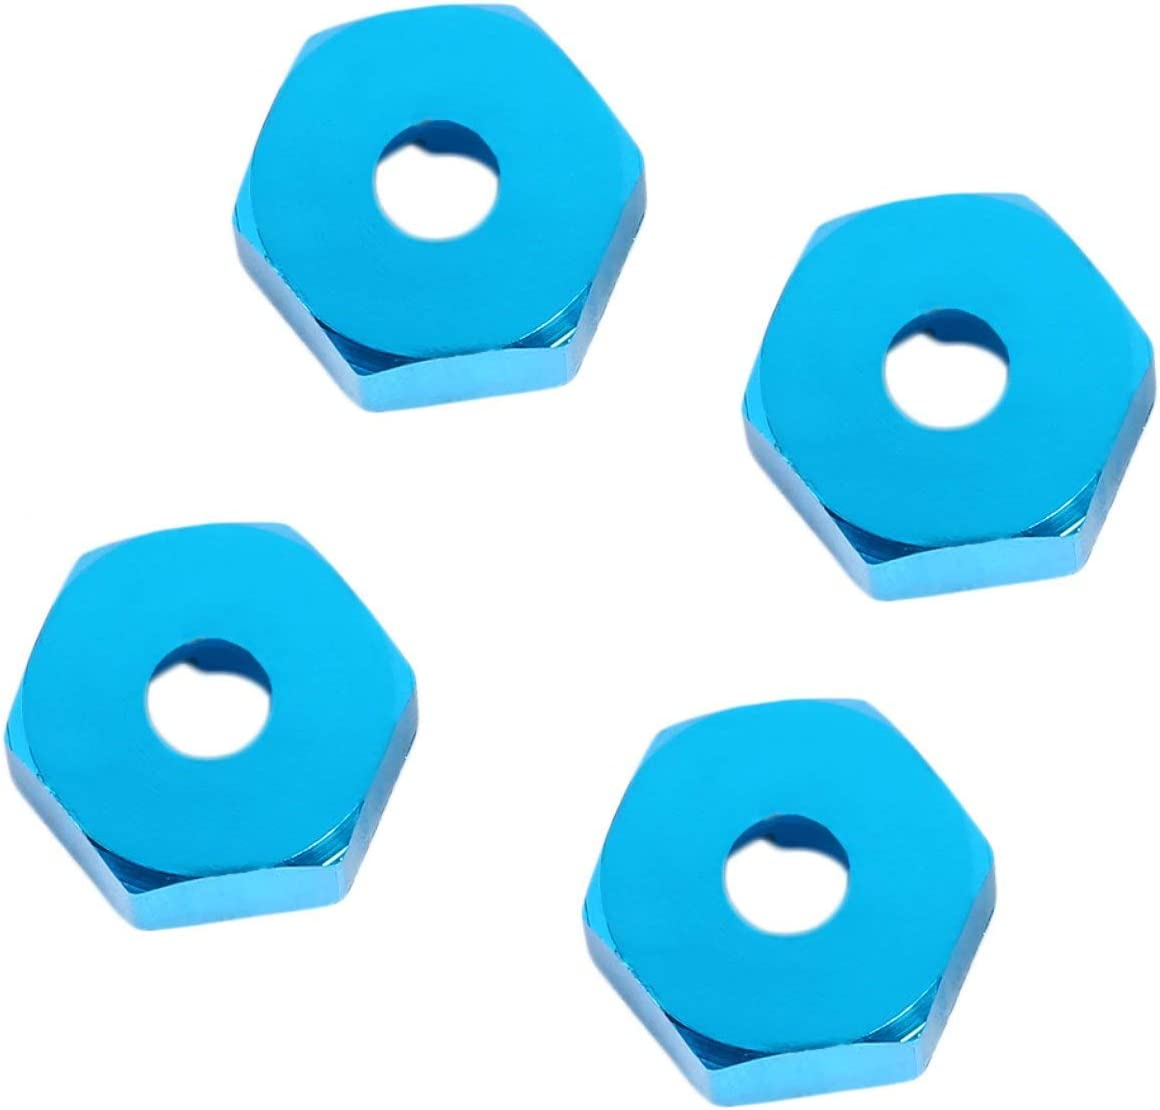 4Pcs Professional 12mm Wheel Hex Hub Adapter Thick with Pins For Rc Car Slash Upgraded Hop-Up Parts 12mm Wheel Hex Blue Jasnyfall